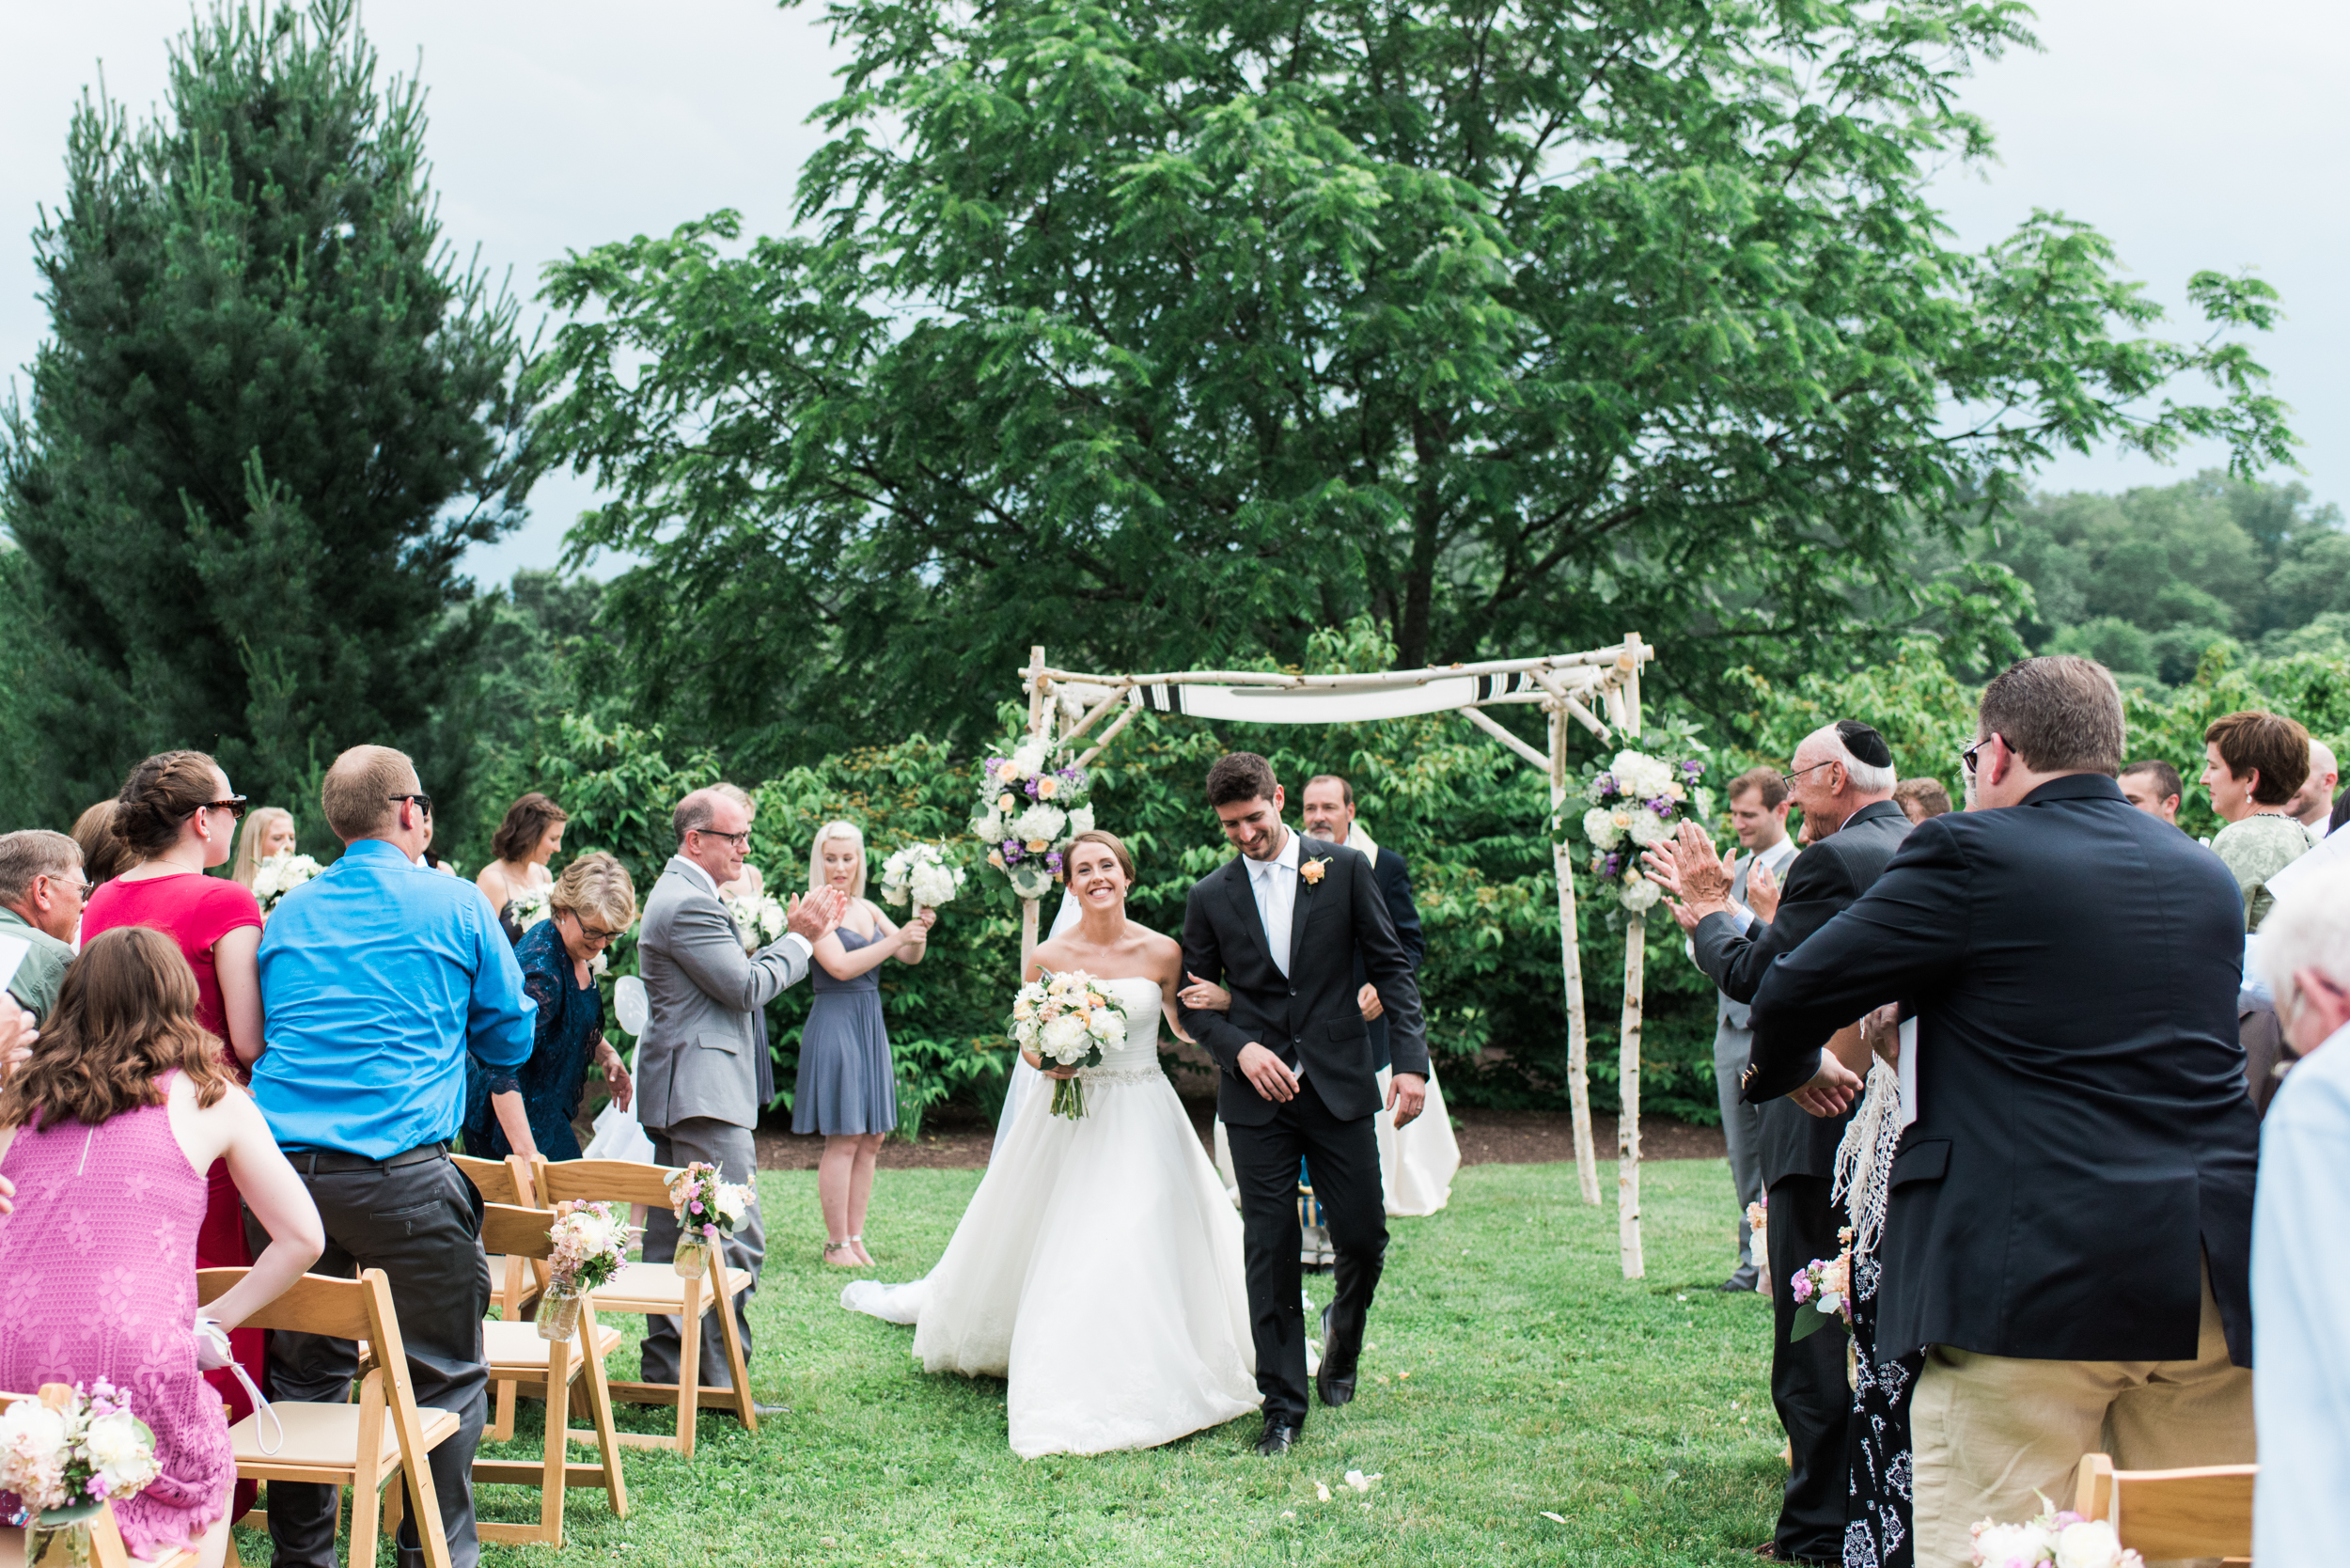 Farm Wedding Venues in MA